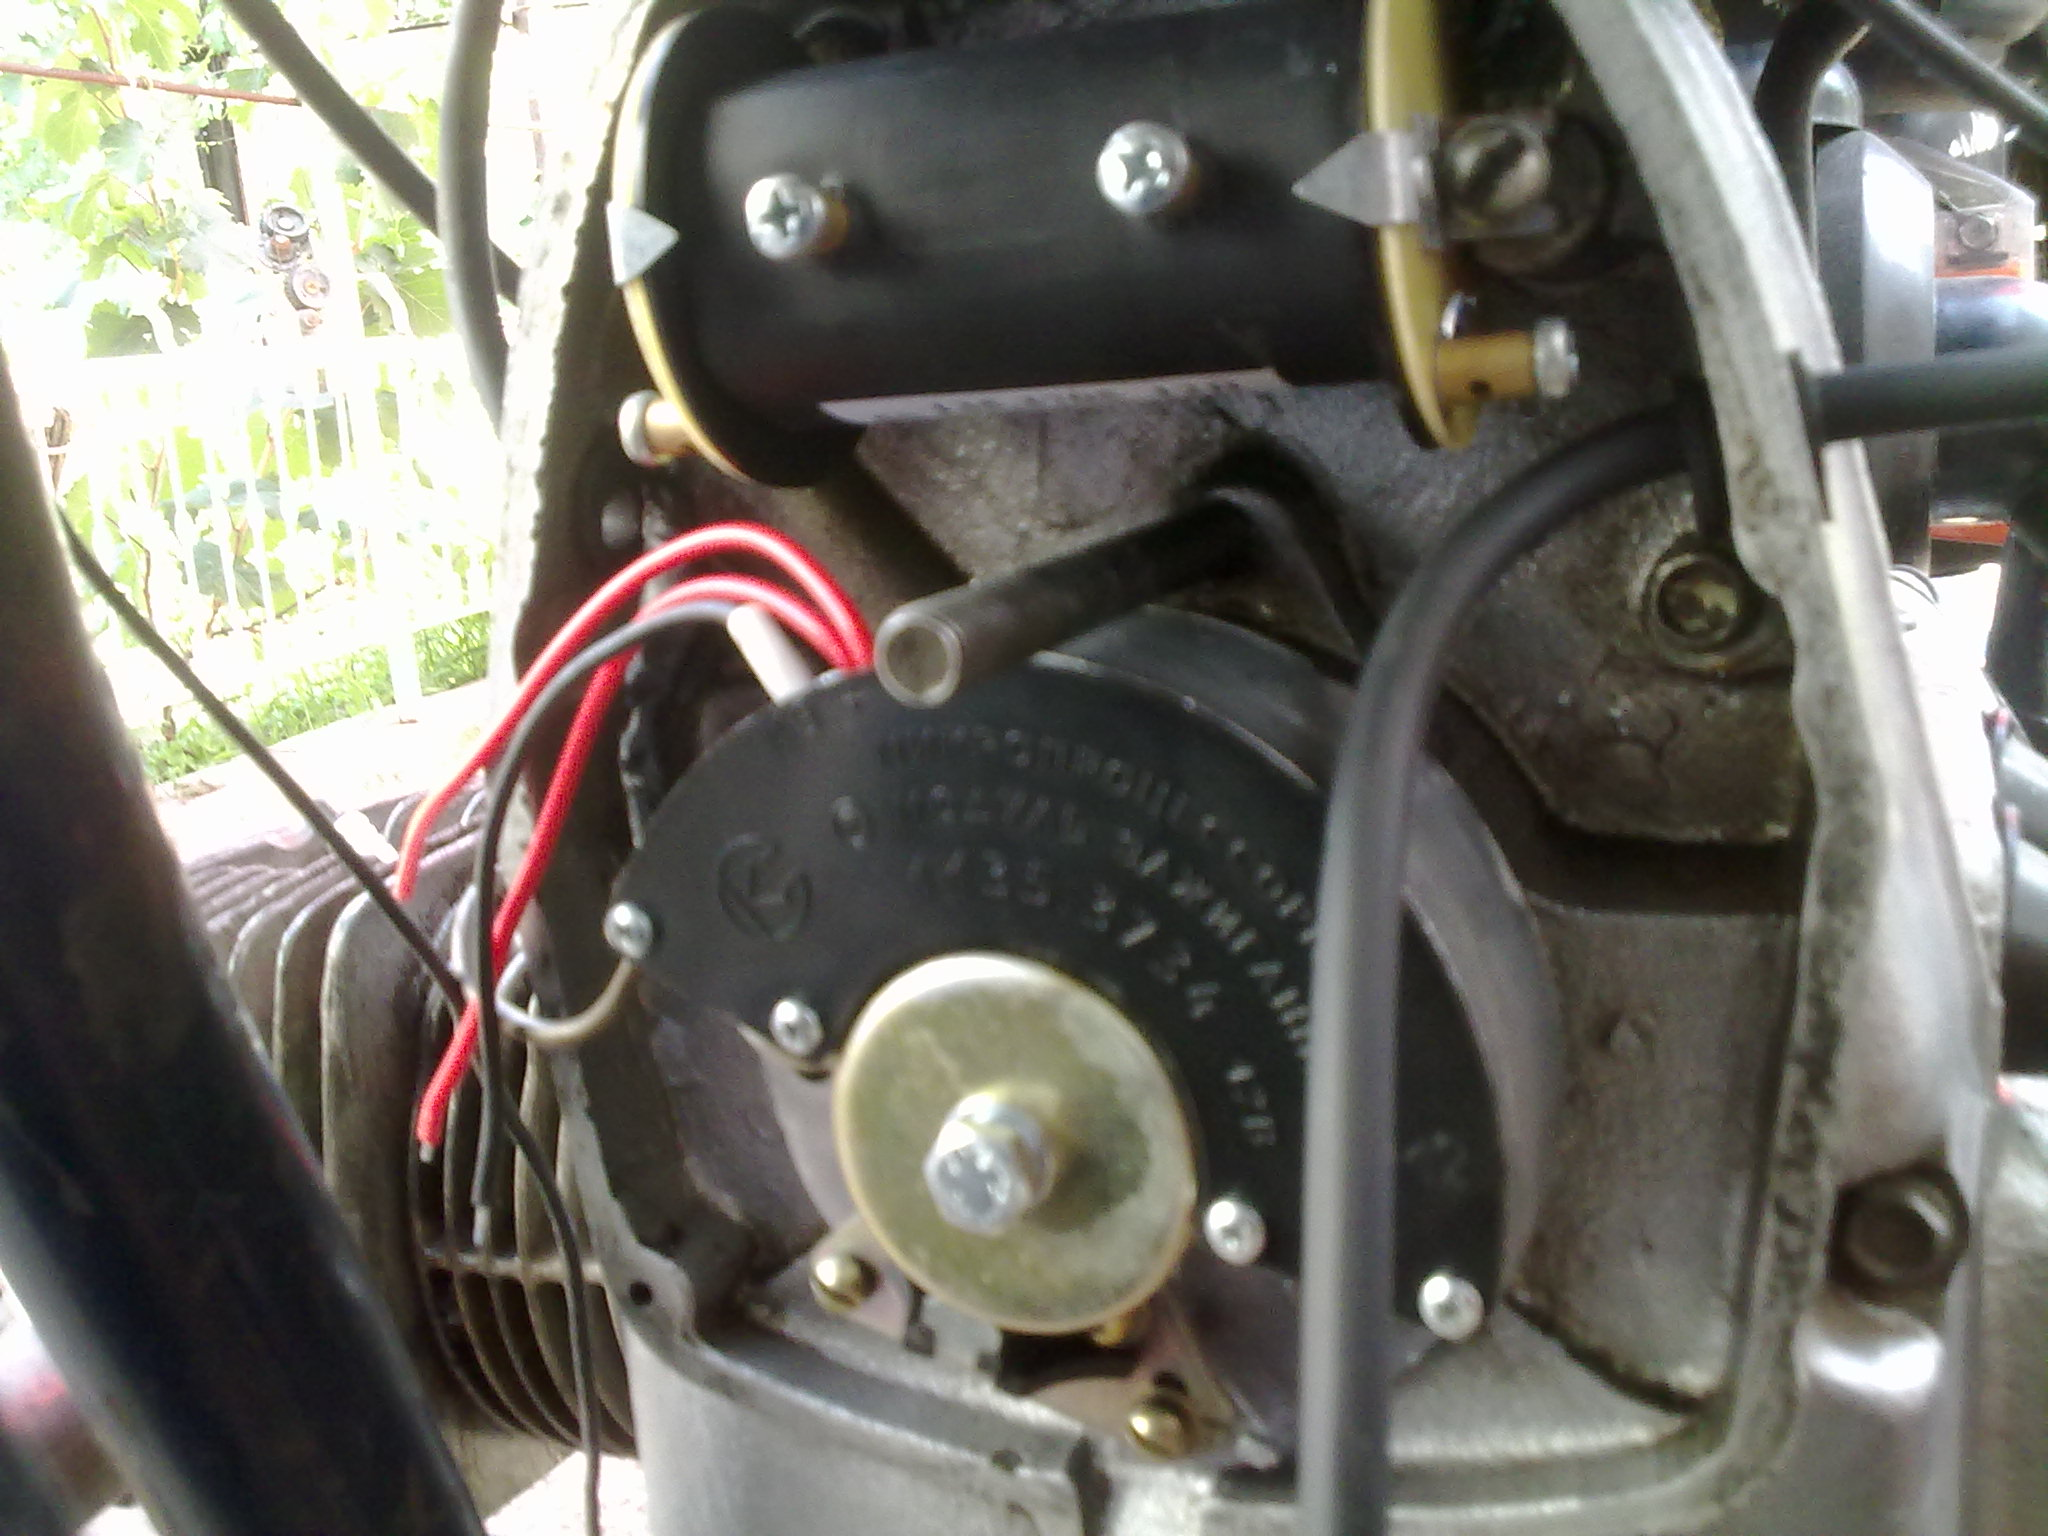 Mini Chopper Parts On Simple Motorcycle Wiring Diagram For Choppers